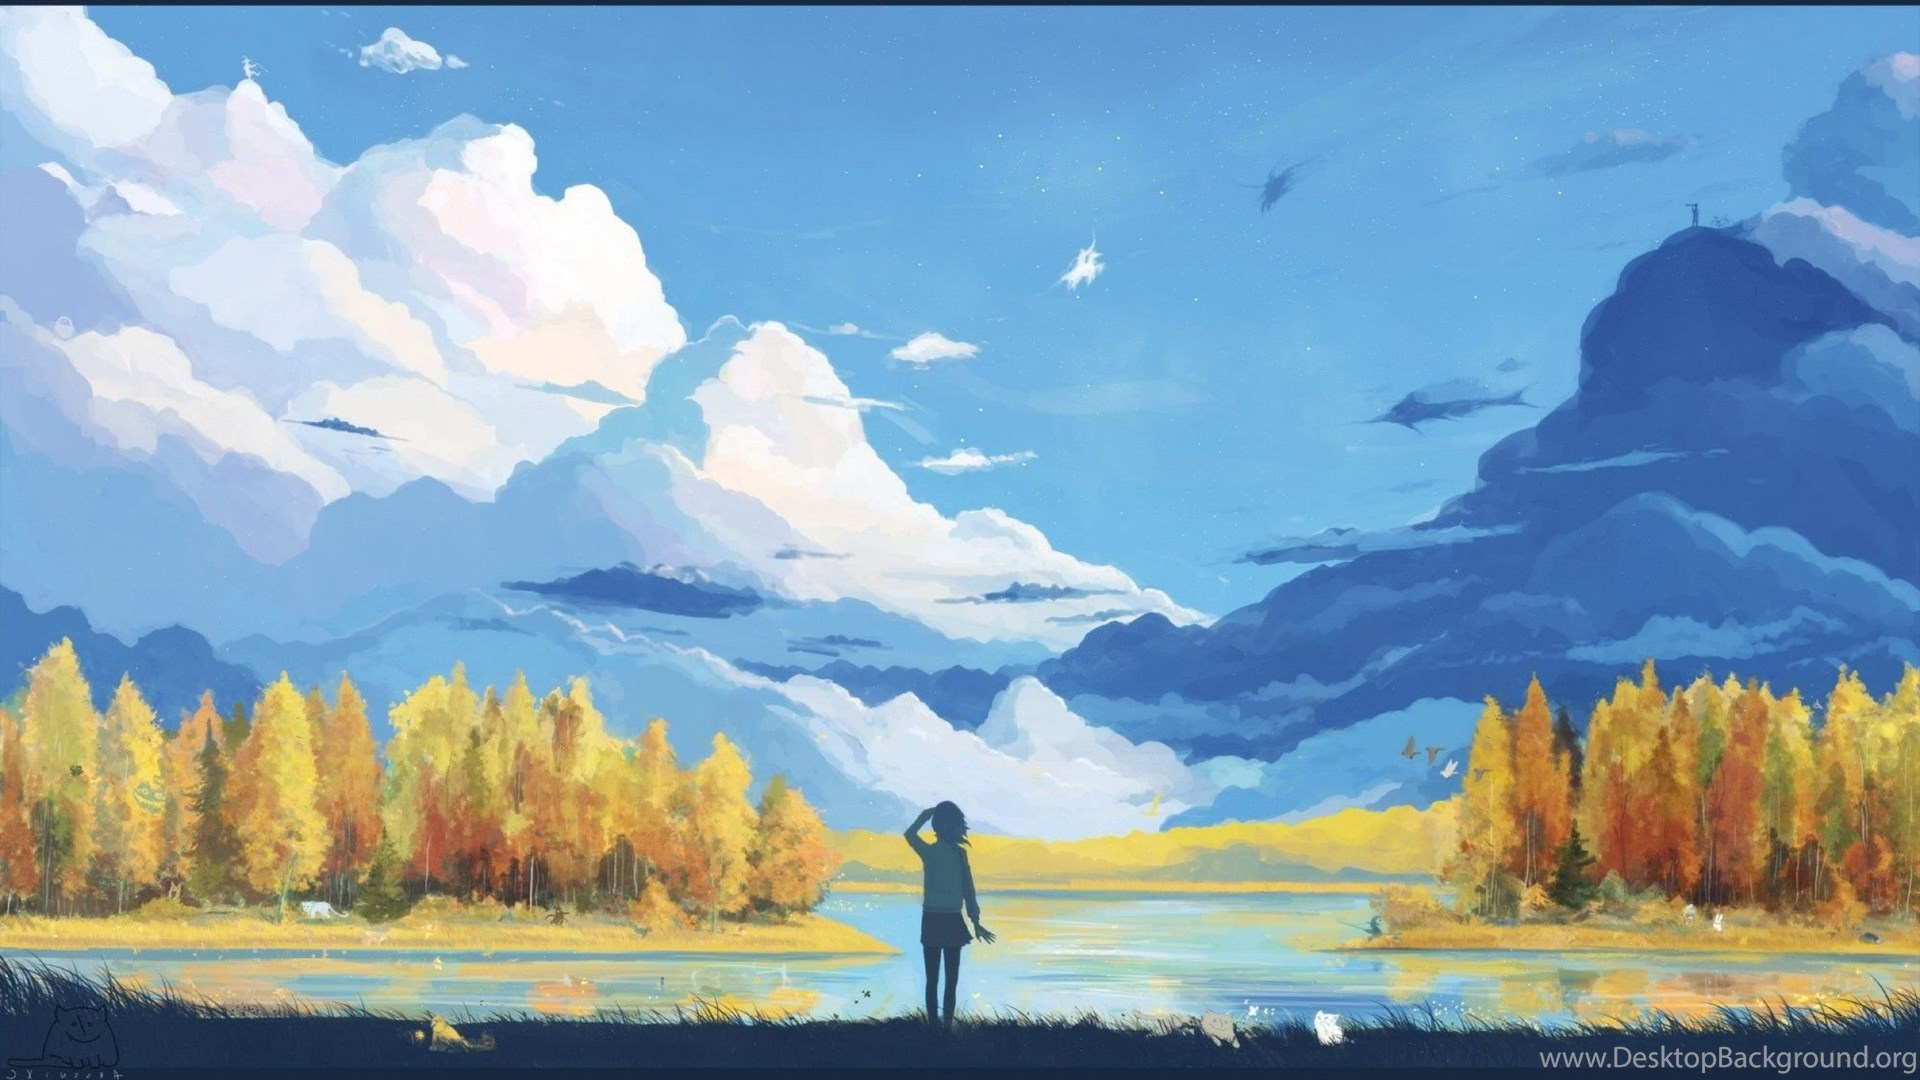 Anime Landscape Nature Fantasy Art Minimalism Wallpapers Hd